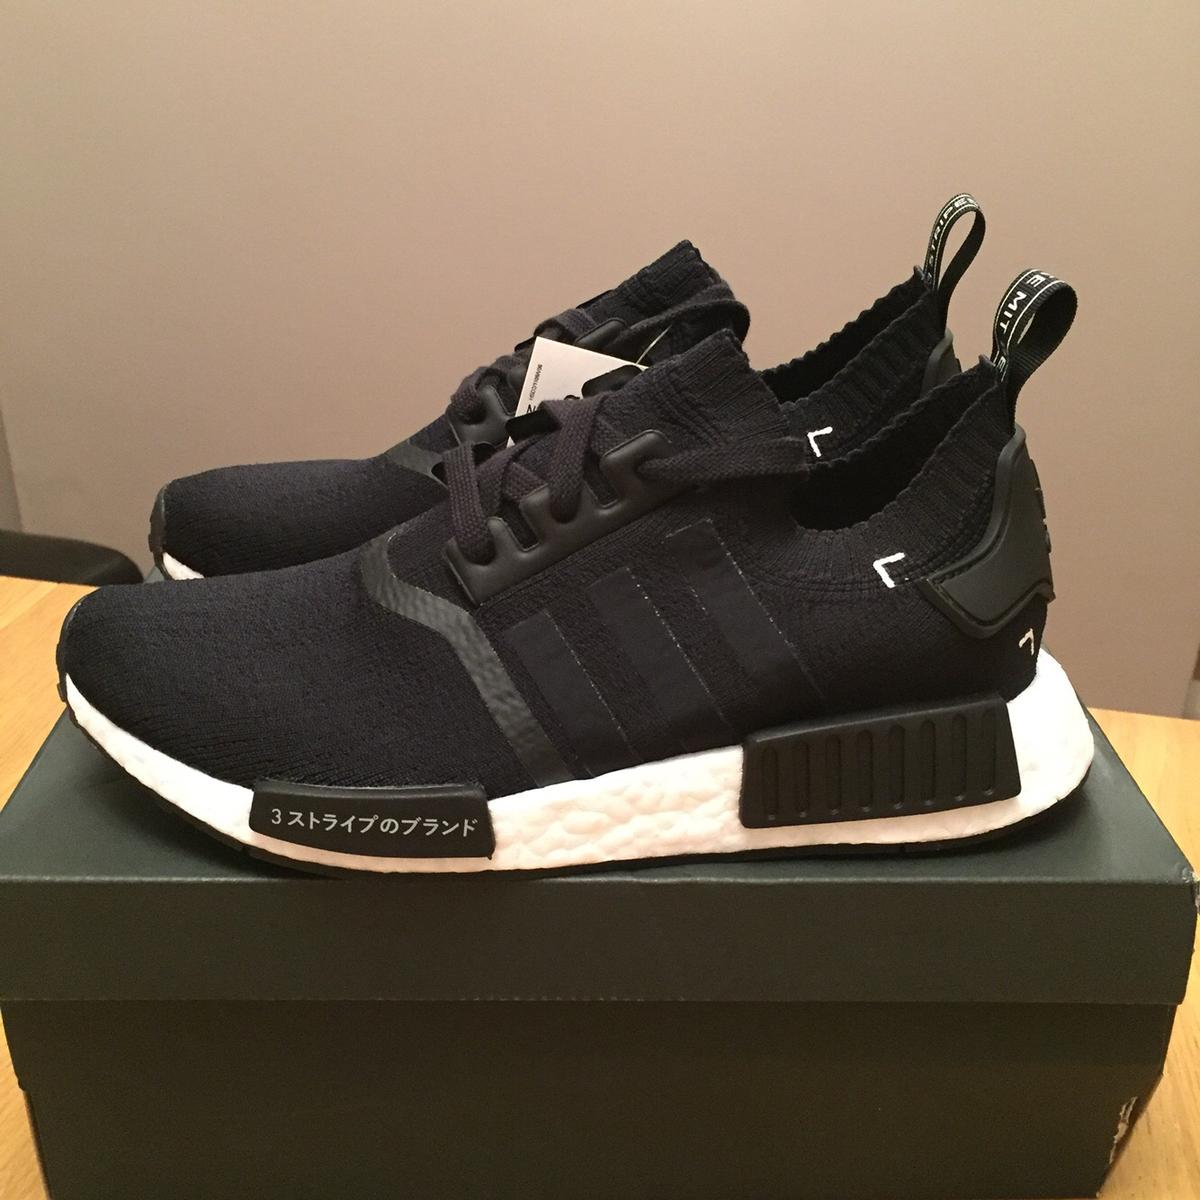 new style 0276d 39081 Adidas NMD R1 Japan Boost Black Primeknit in CR2 South ...